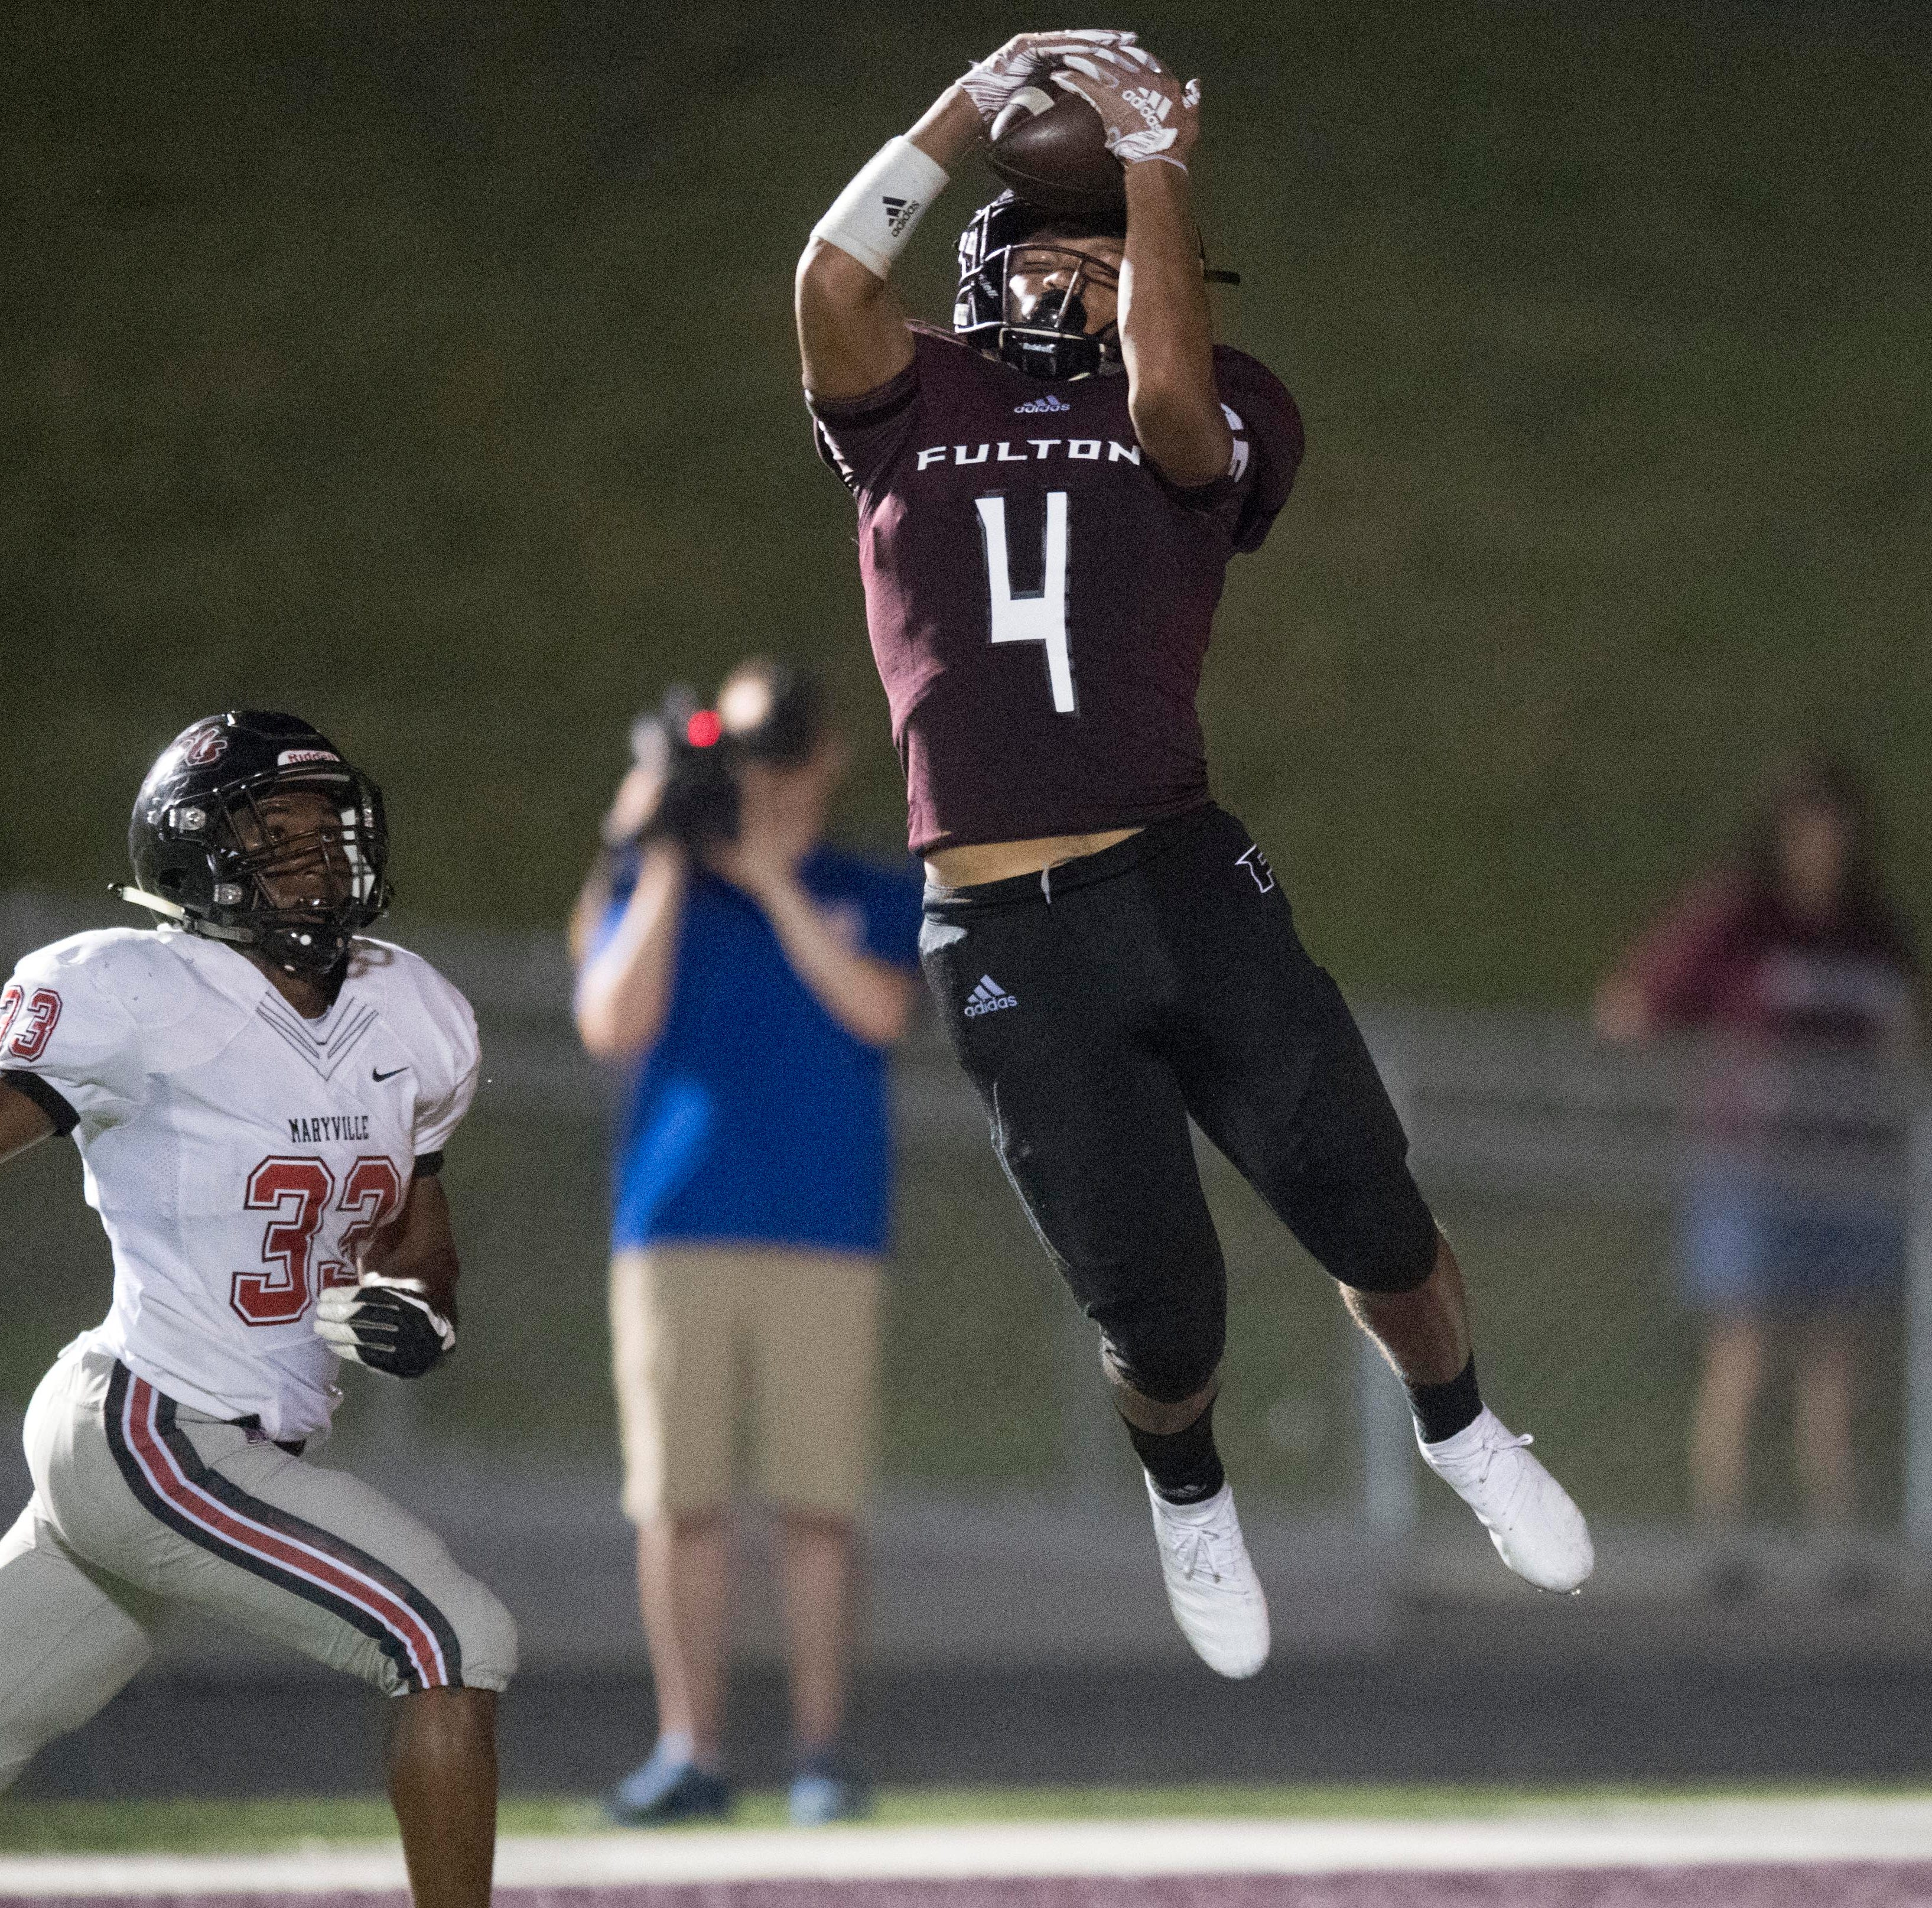 5 takeaways from Week 6 of Knoxville area high school football